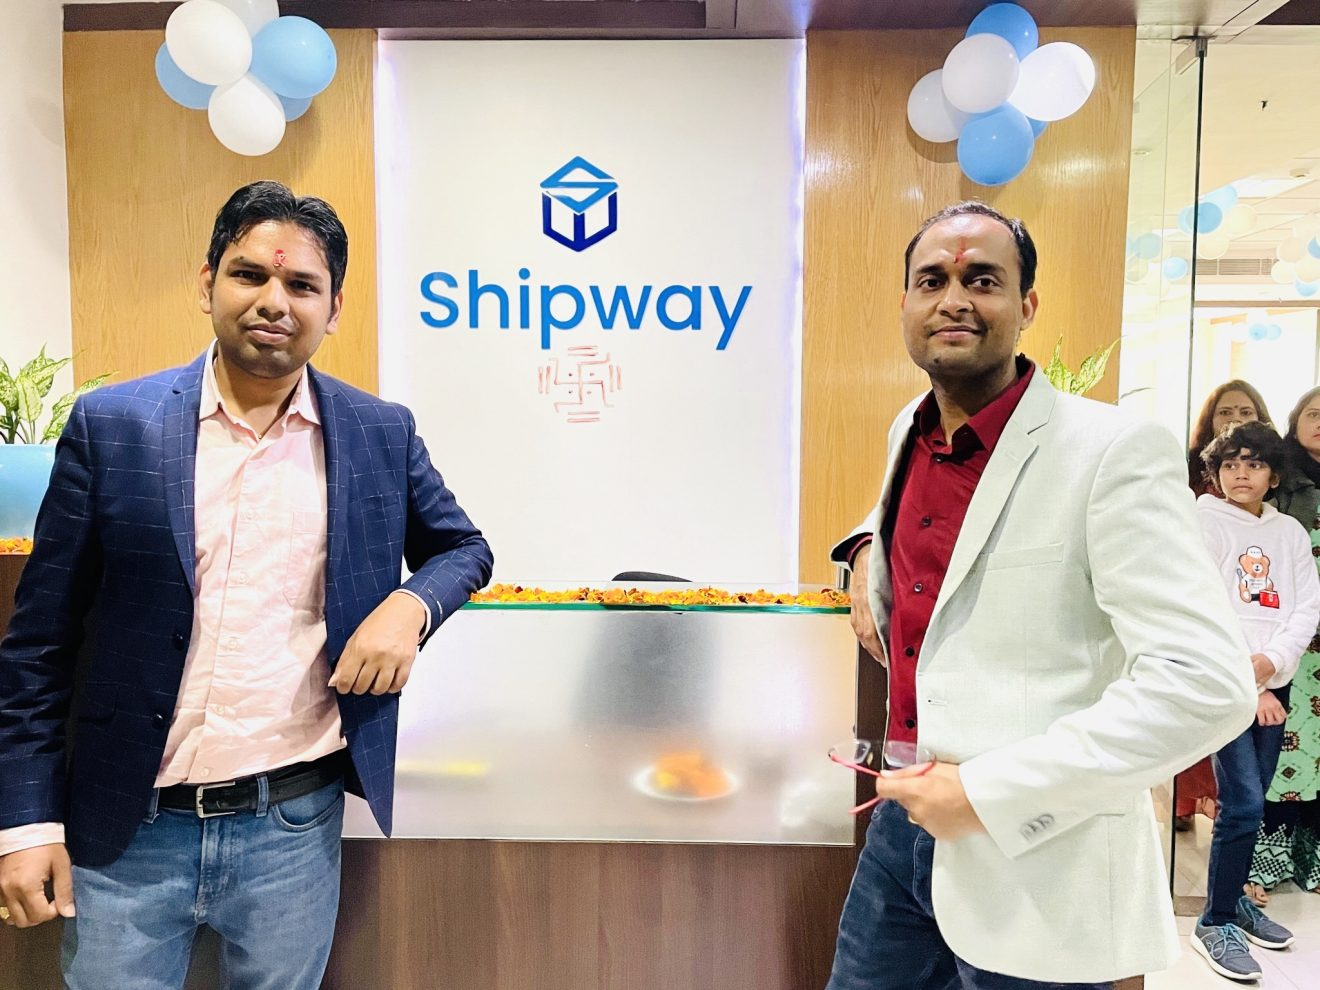 Shipway a D2C enabler launches the self-service returns and refunds management system